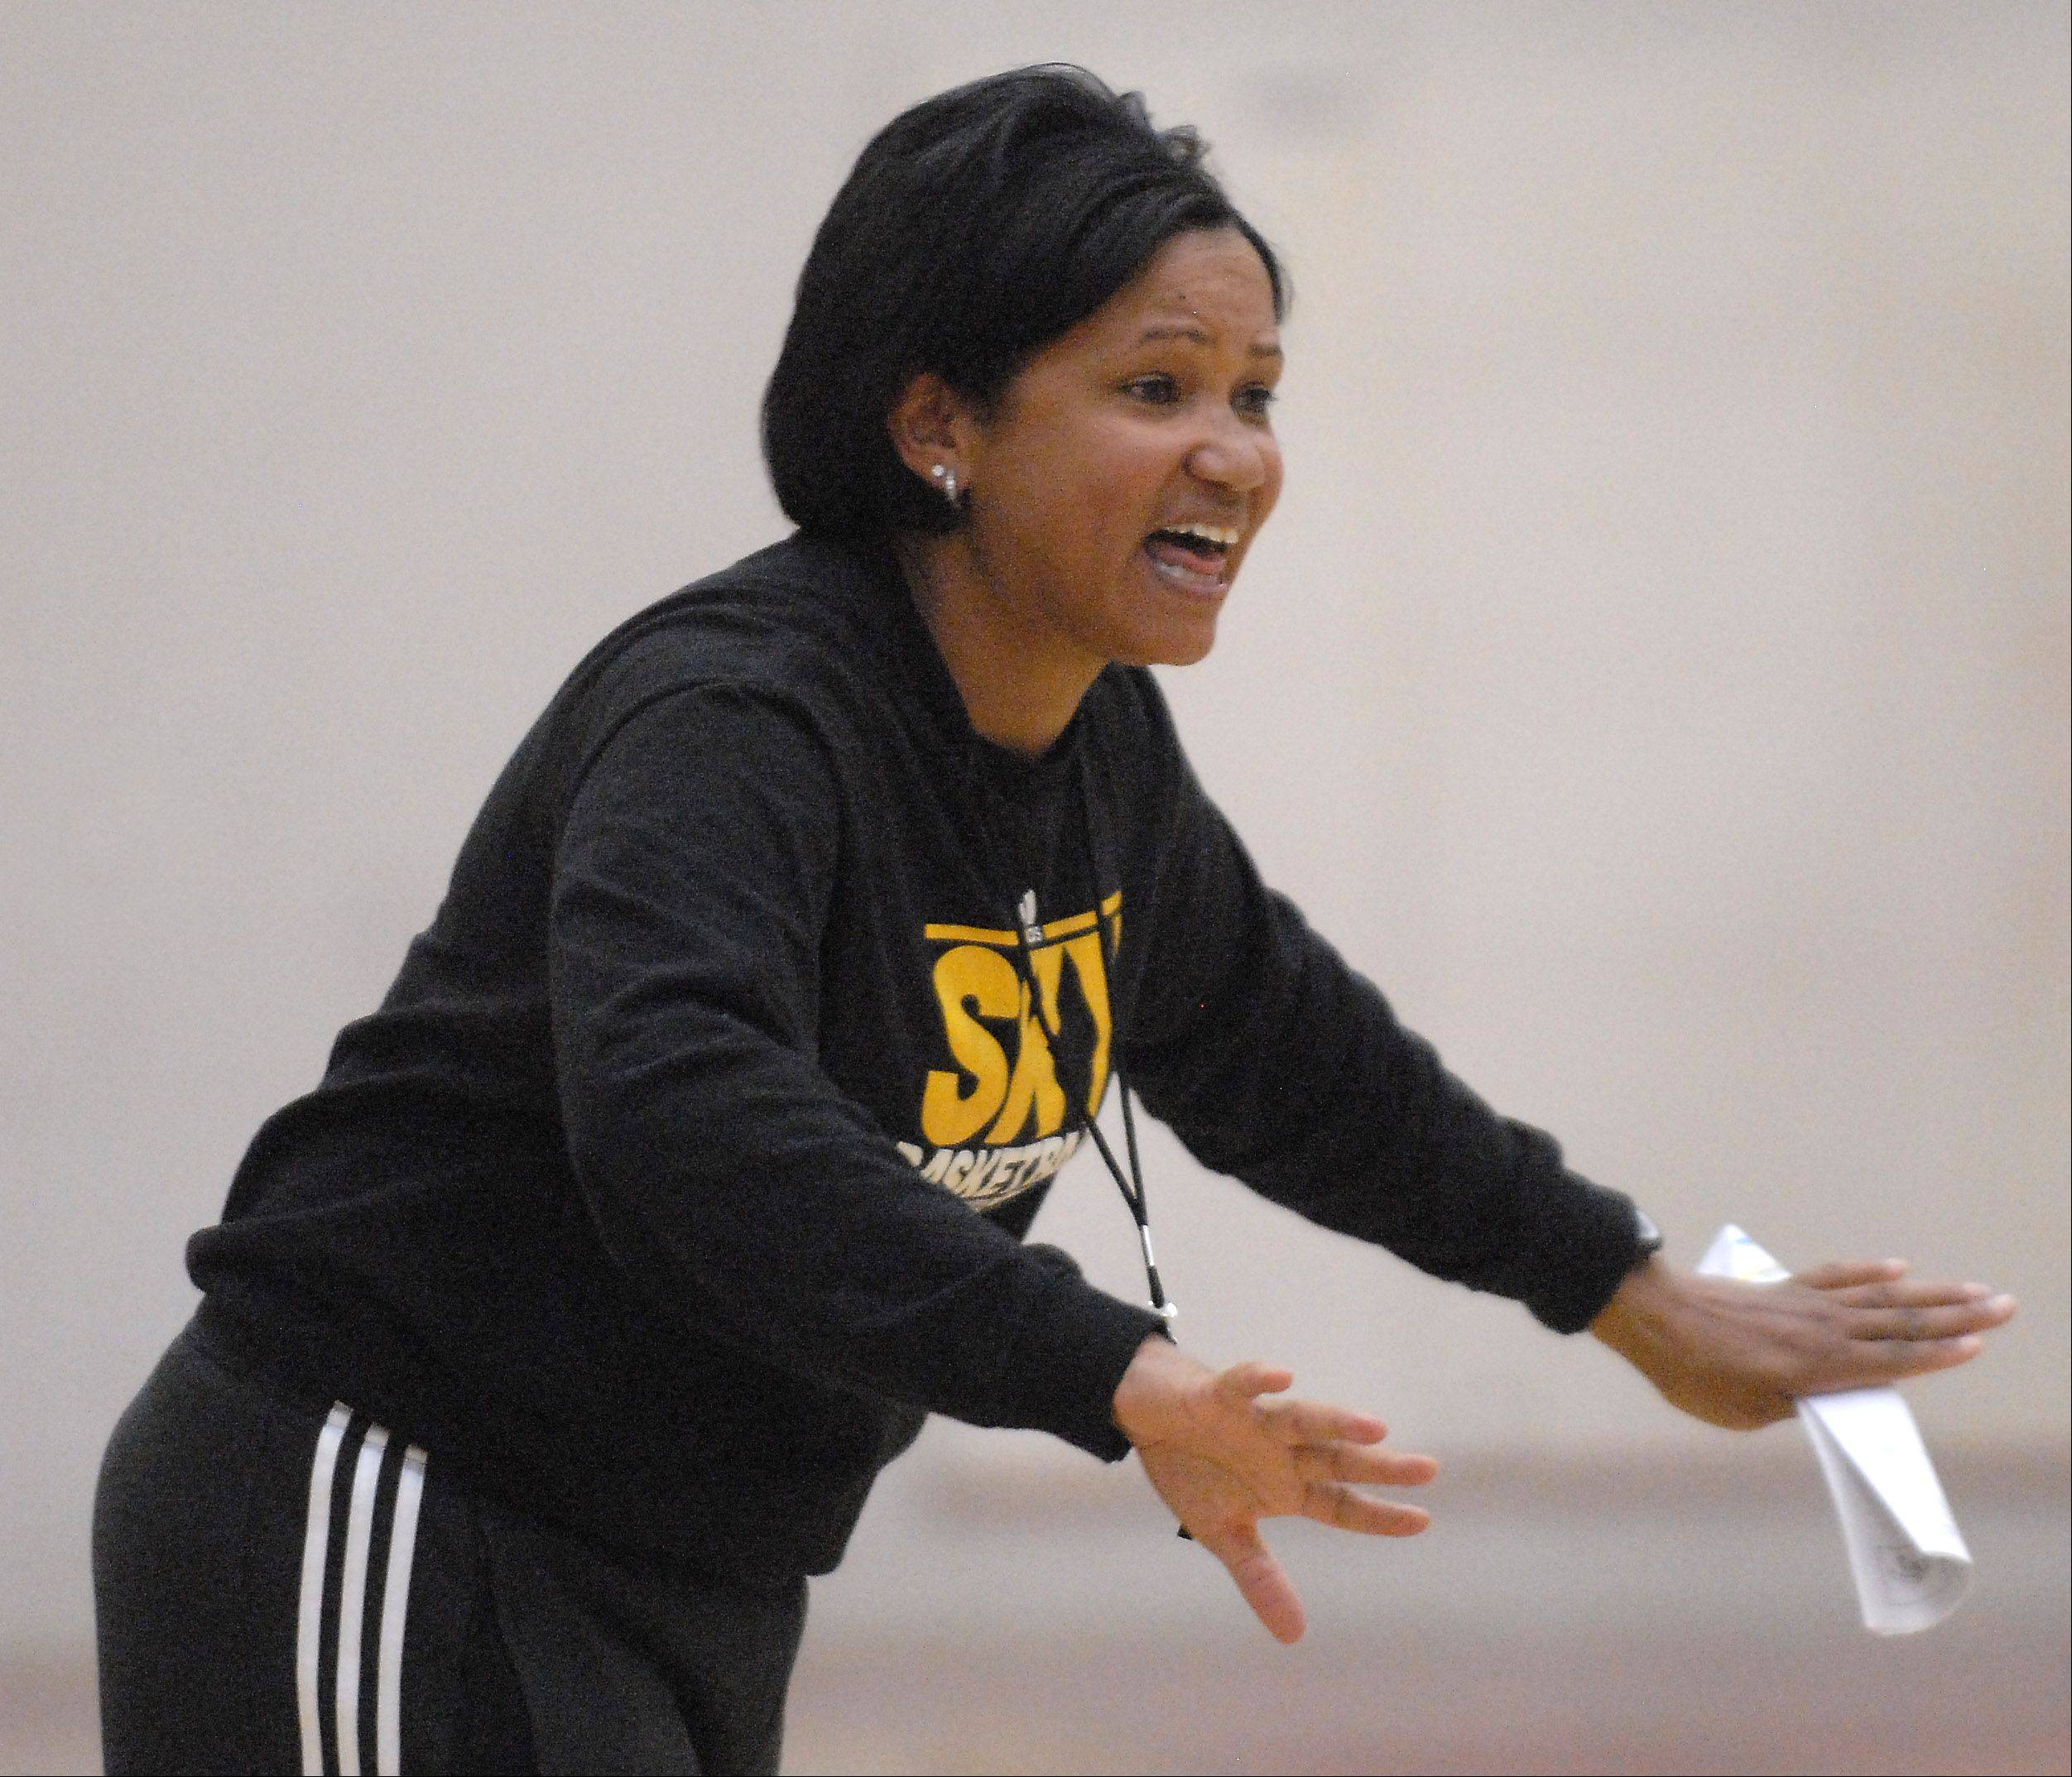 Chicago Sky head coach and general manager Pokey Chatman added some significant pieces to the team for the 2012 season. The Sky hosts the Indiana Fever Friday at Allstate Arena.